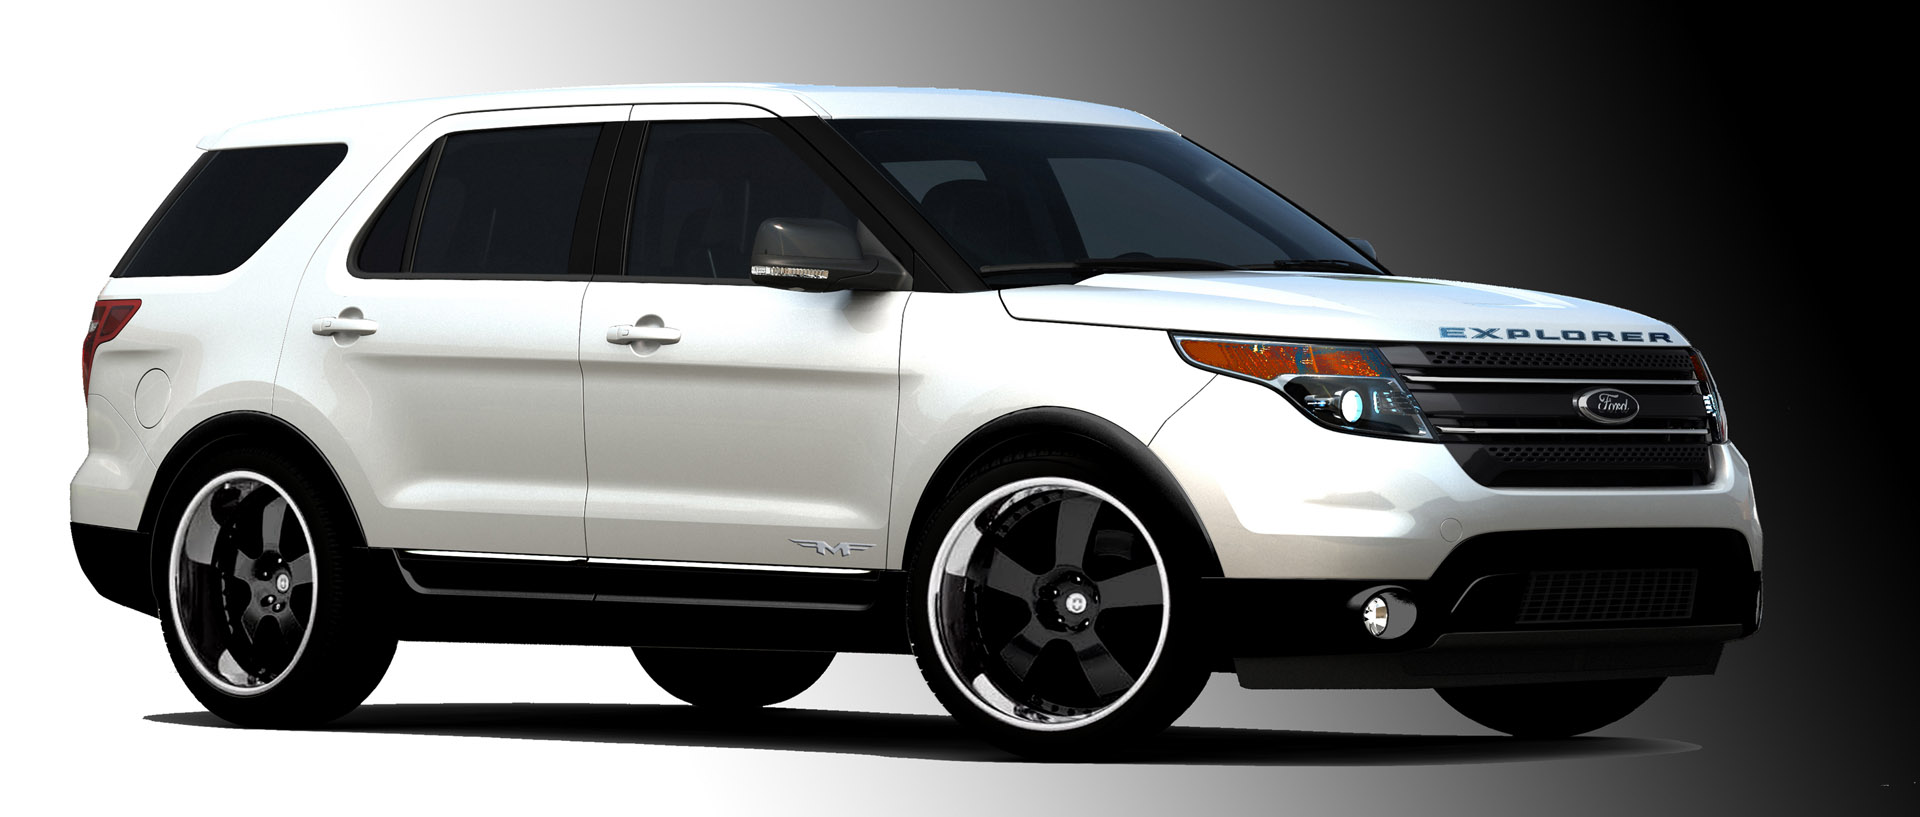 ford to debut three different 2011 explorer rides at sema. Black Bedroom Furniture Sets. Home Design Ideas